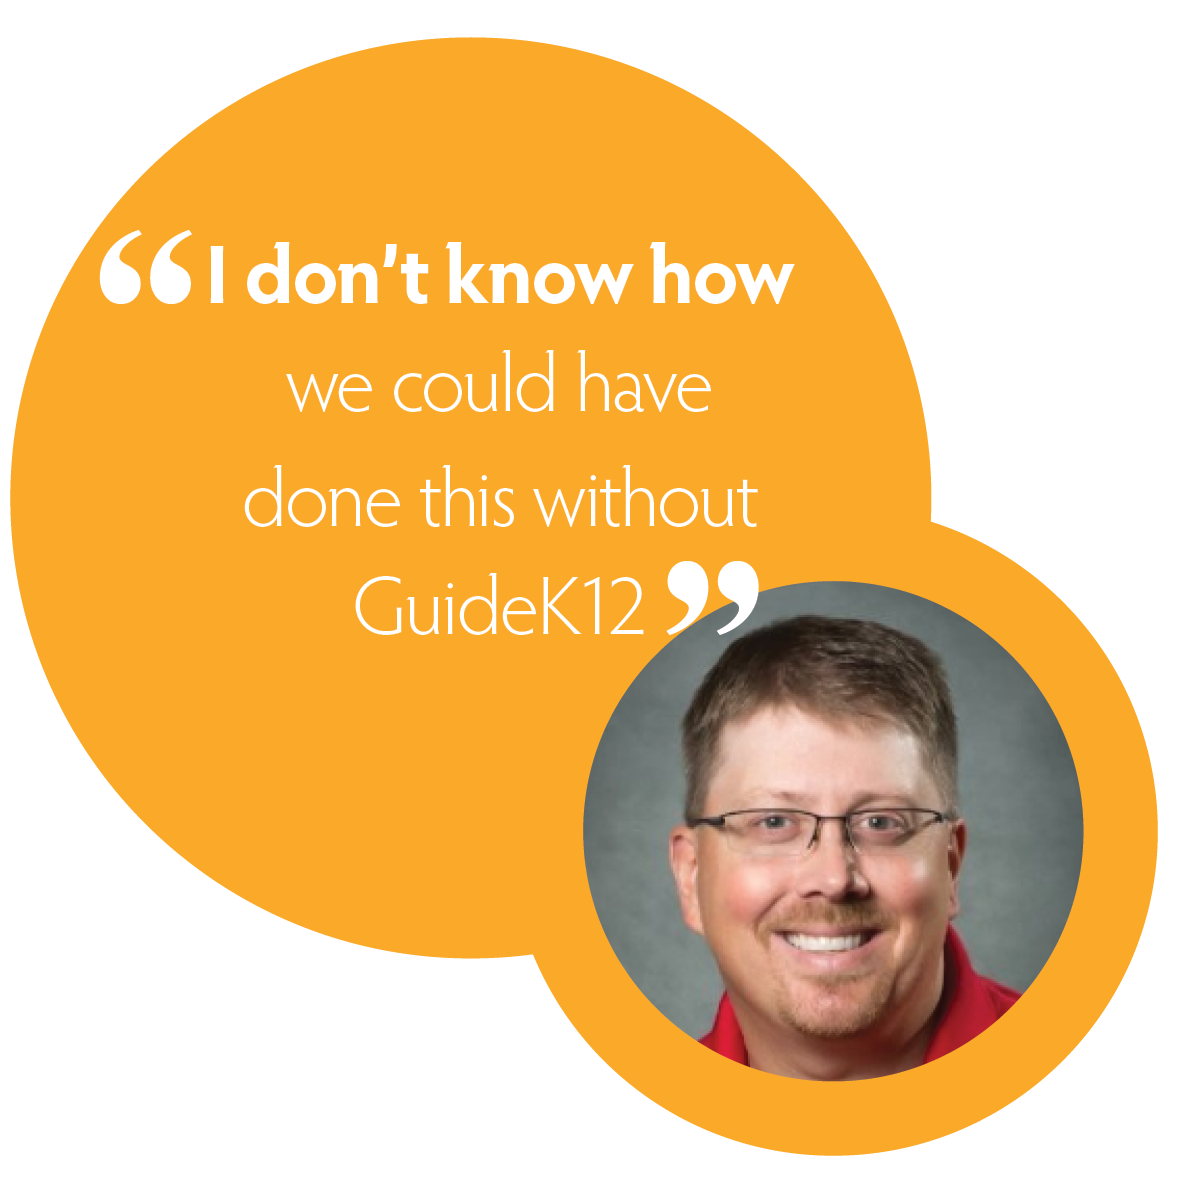 Gk12 - Mark Finstrom Quote